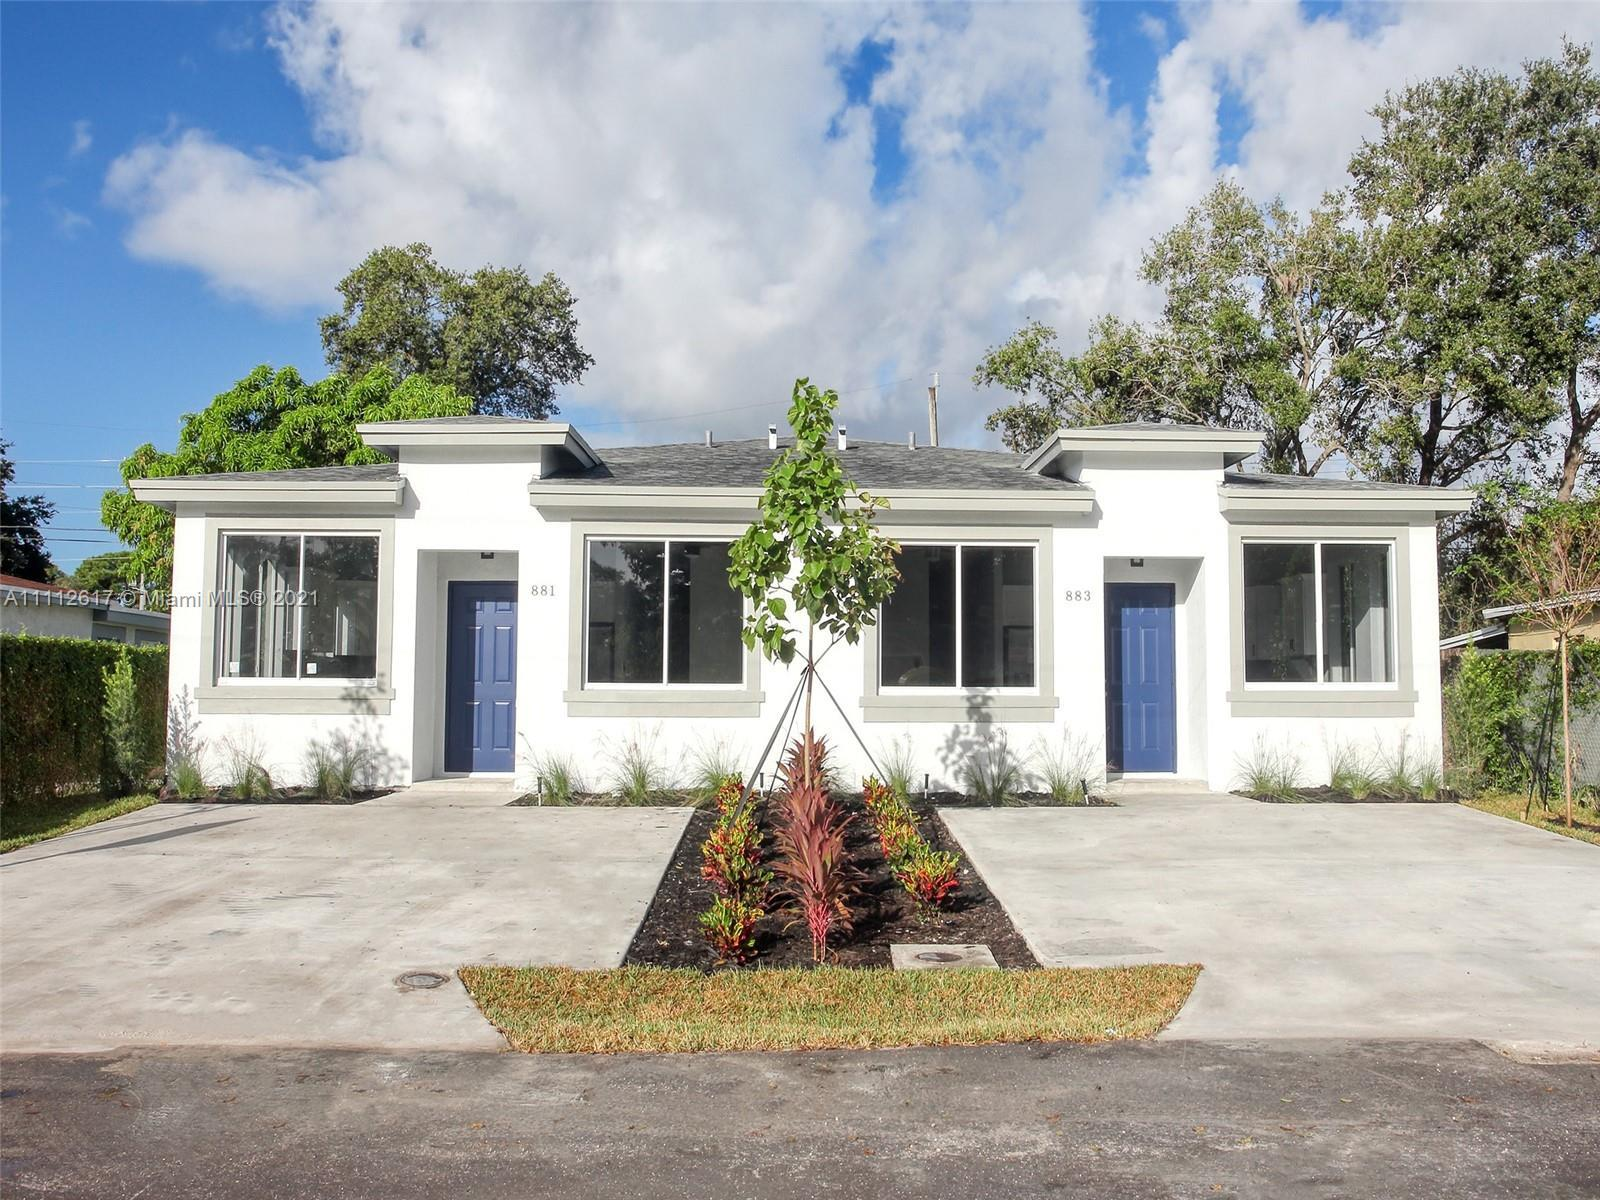 New 2021 construction 3 bed 2 bath in Ft Lauderdale for an amazing price.  Amazing opportunity to ge